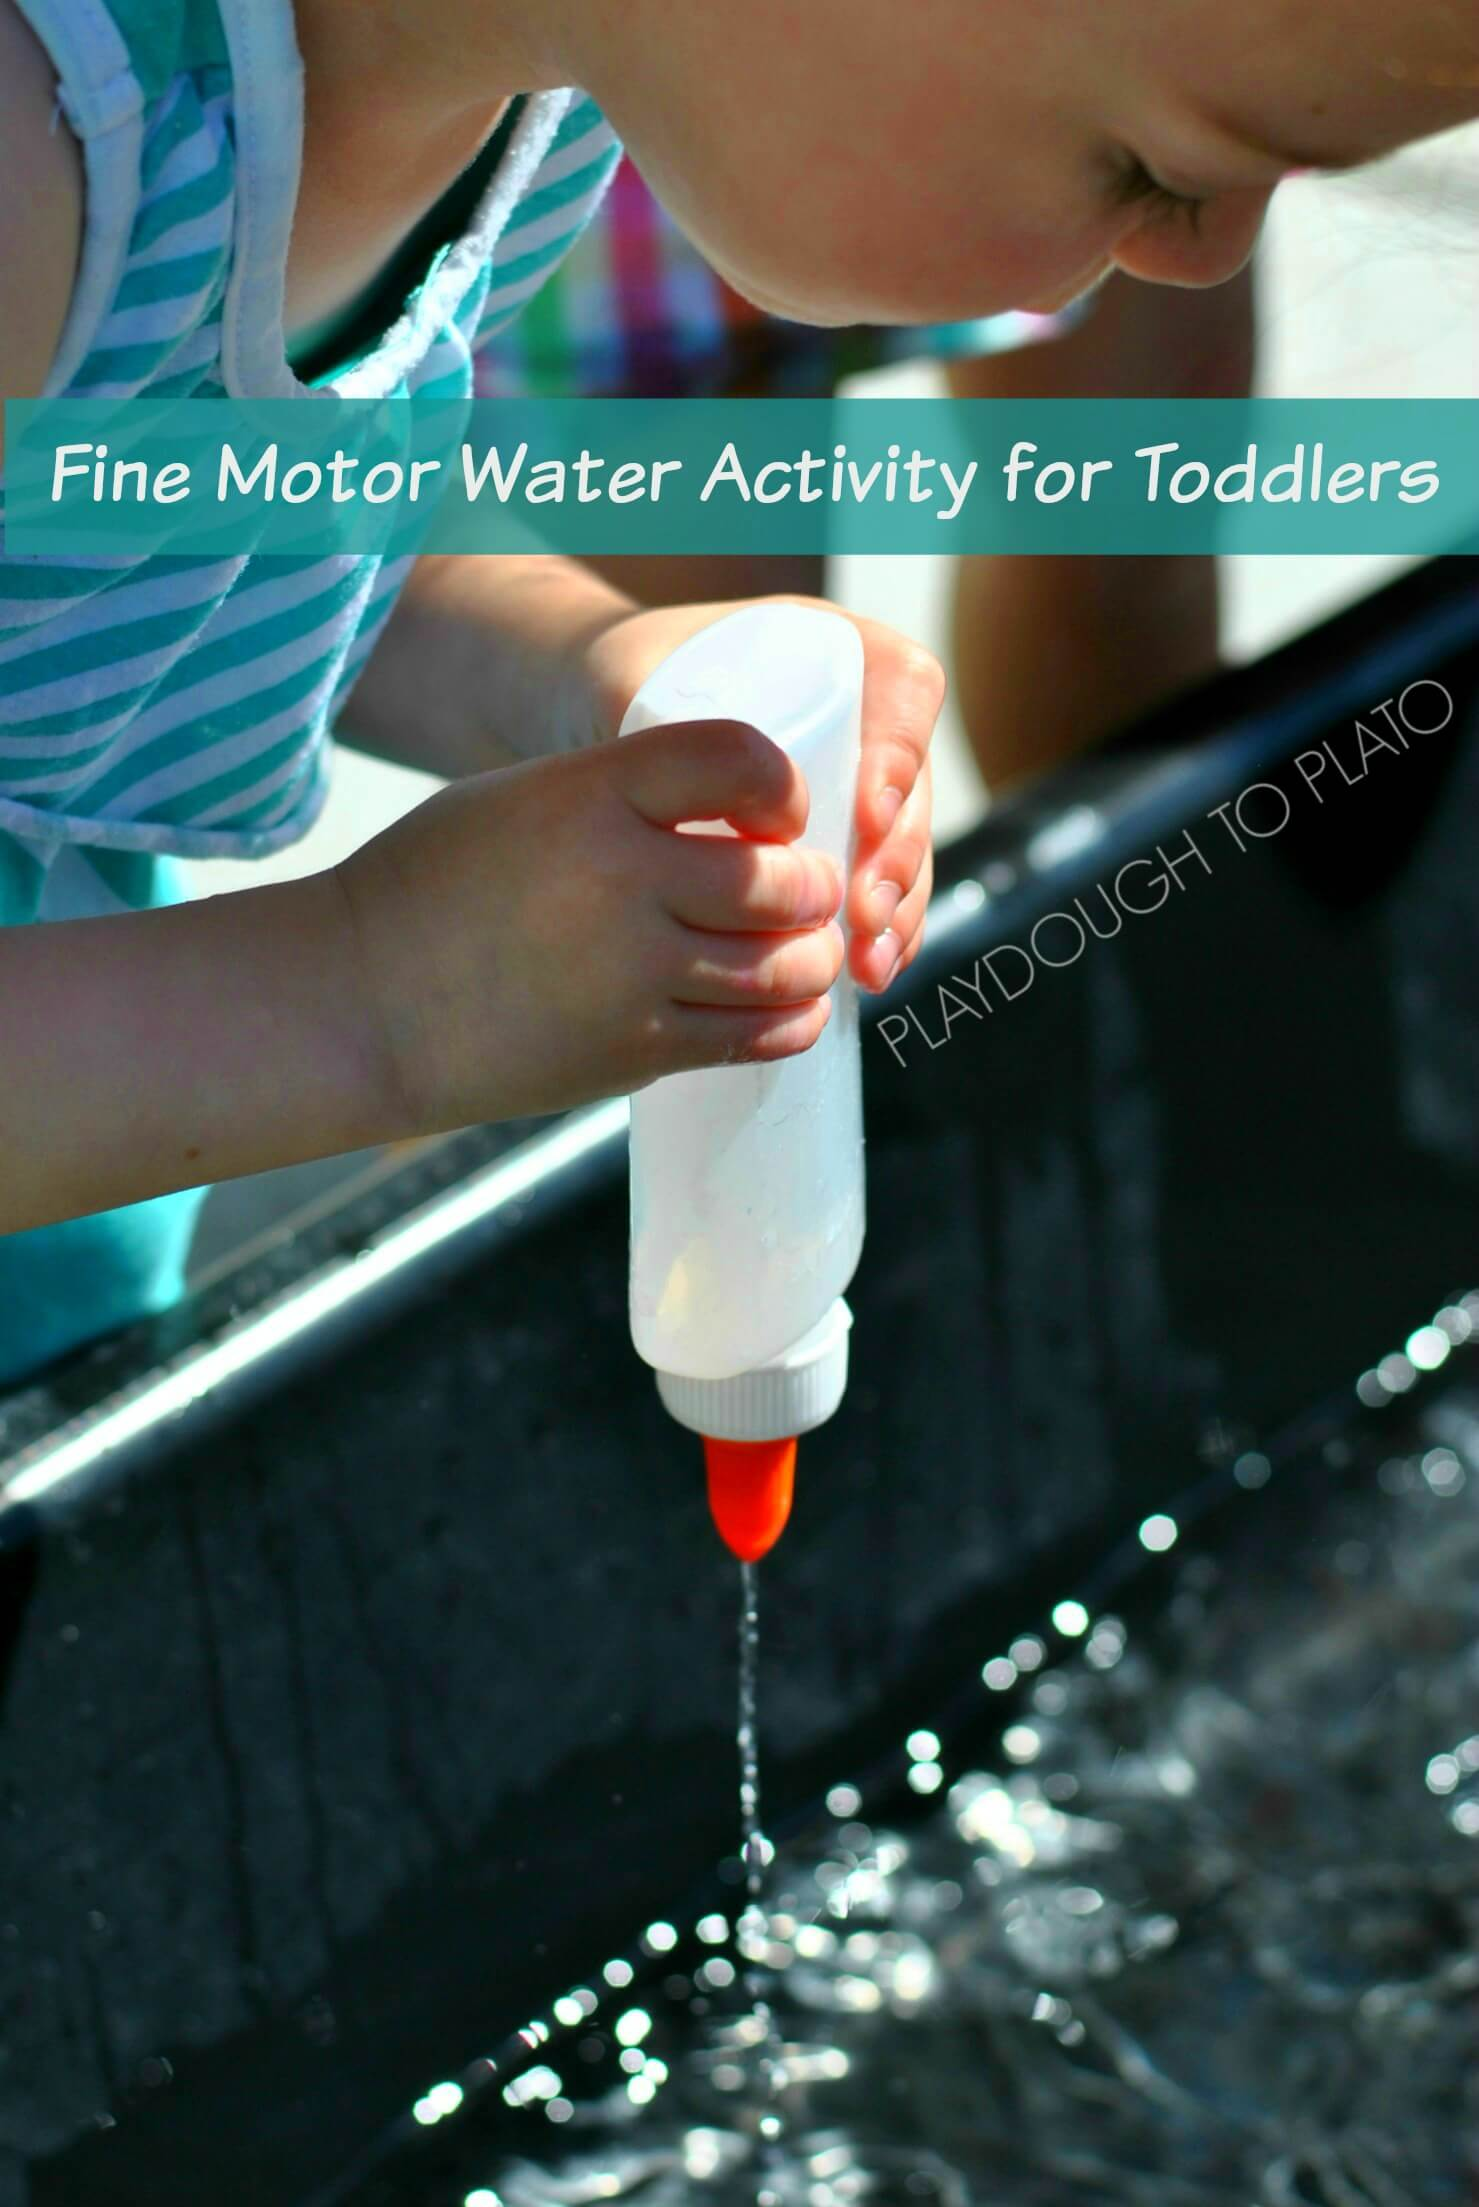 Fine Motor Water Activity for Toddlers - Playdough to Plato.2